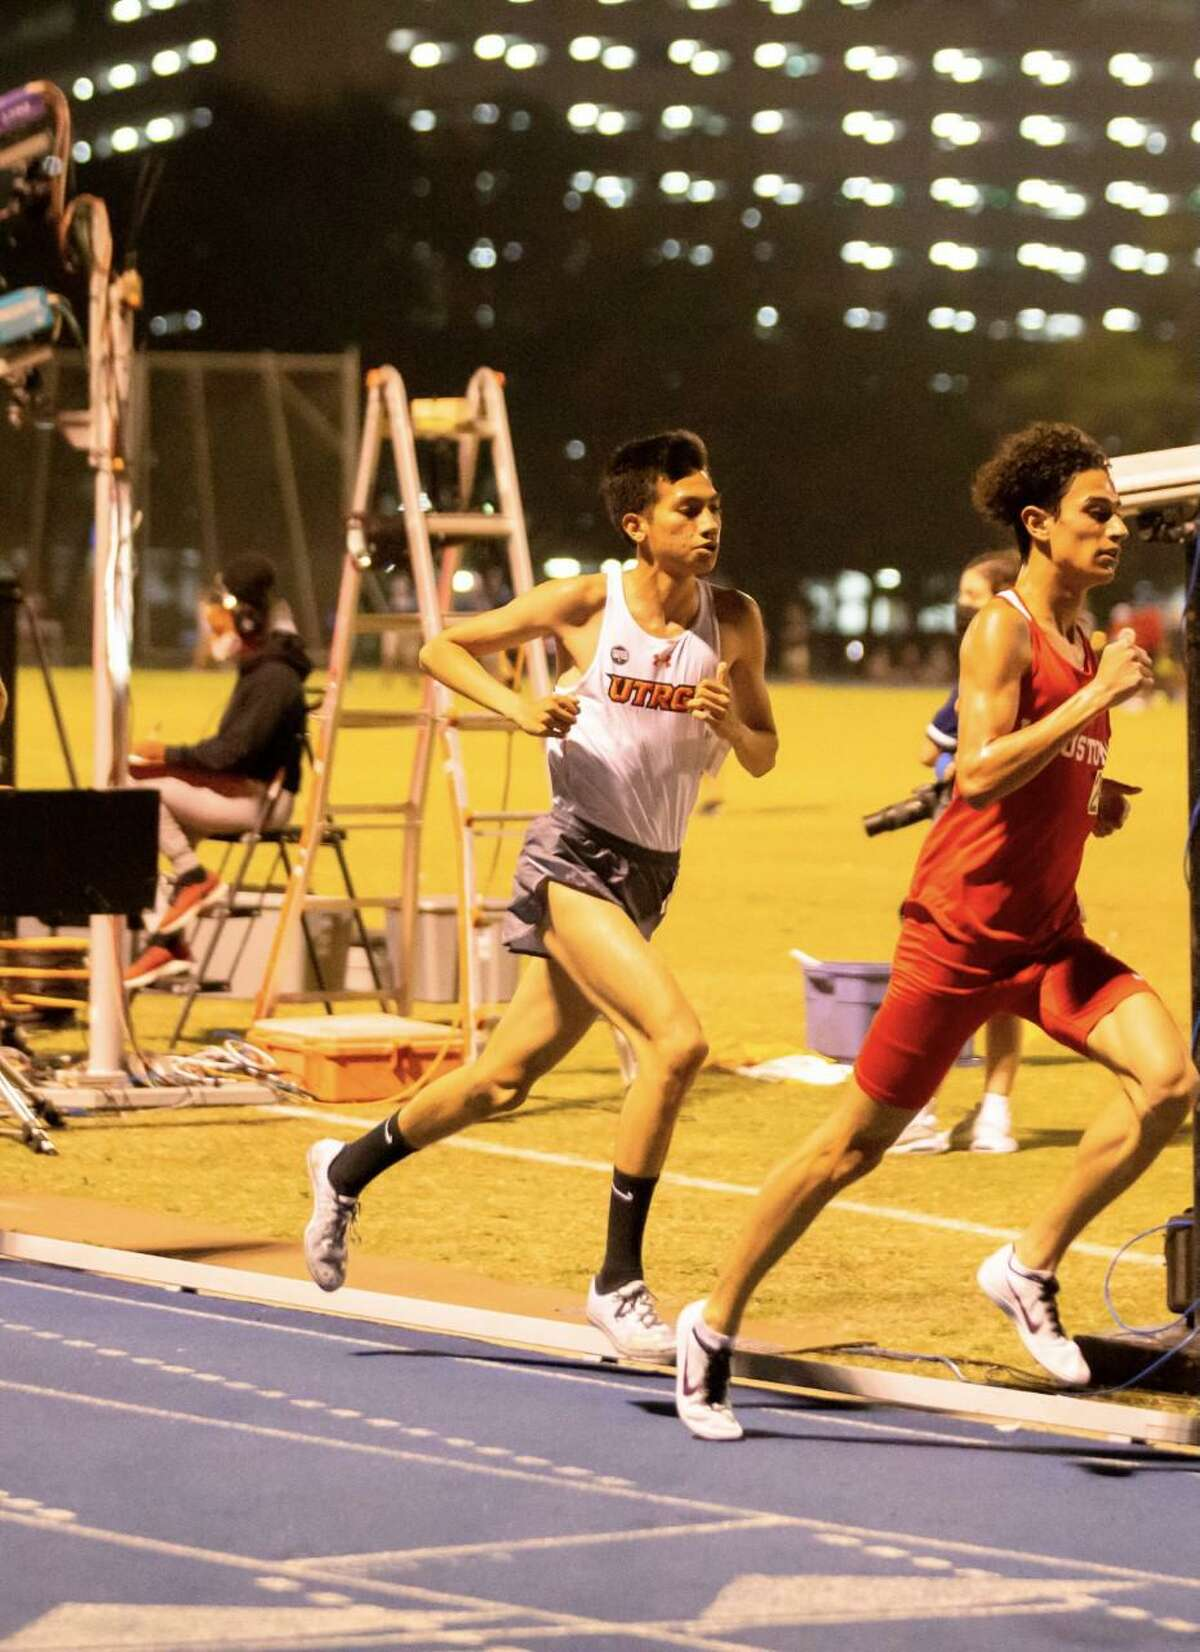 After adjusting to the speed and training of the college level, Alex Munoz is eyeing a big step forward in his junior season running at UTRGV.